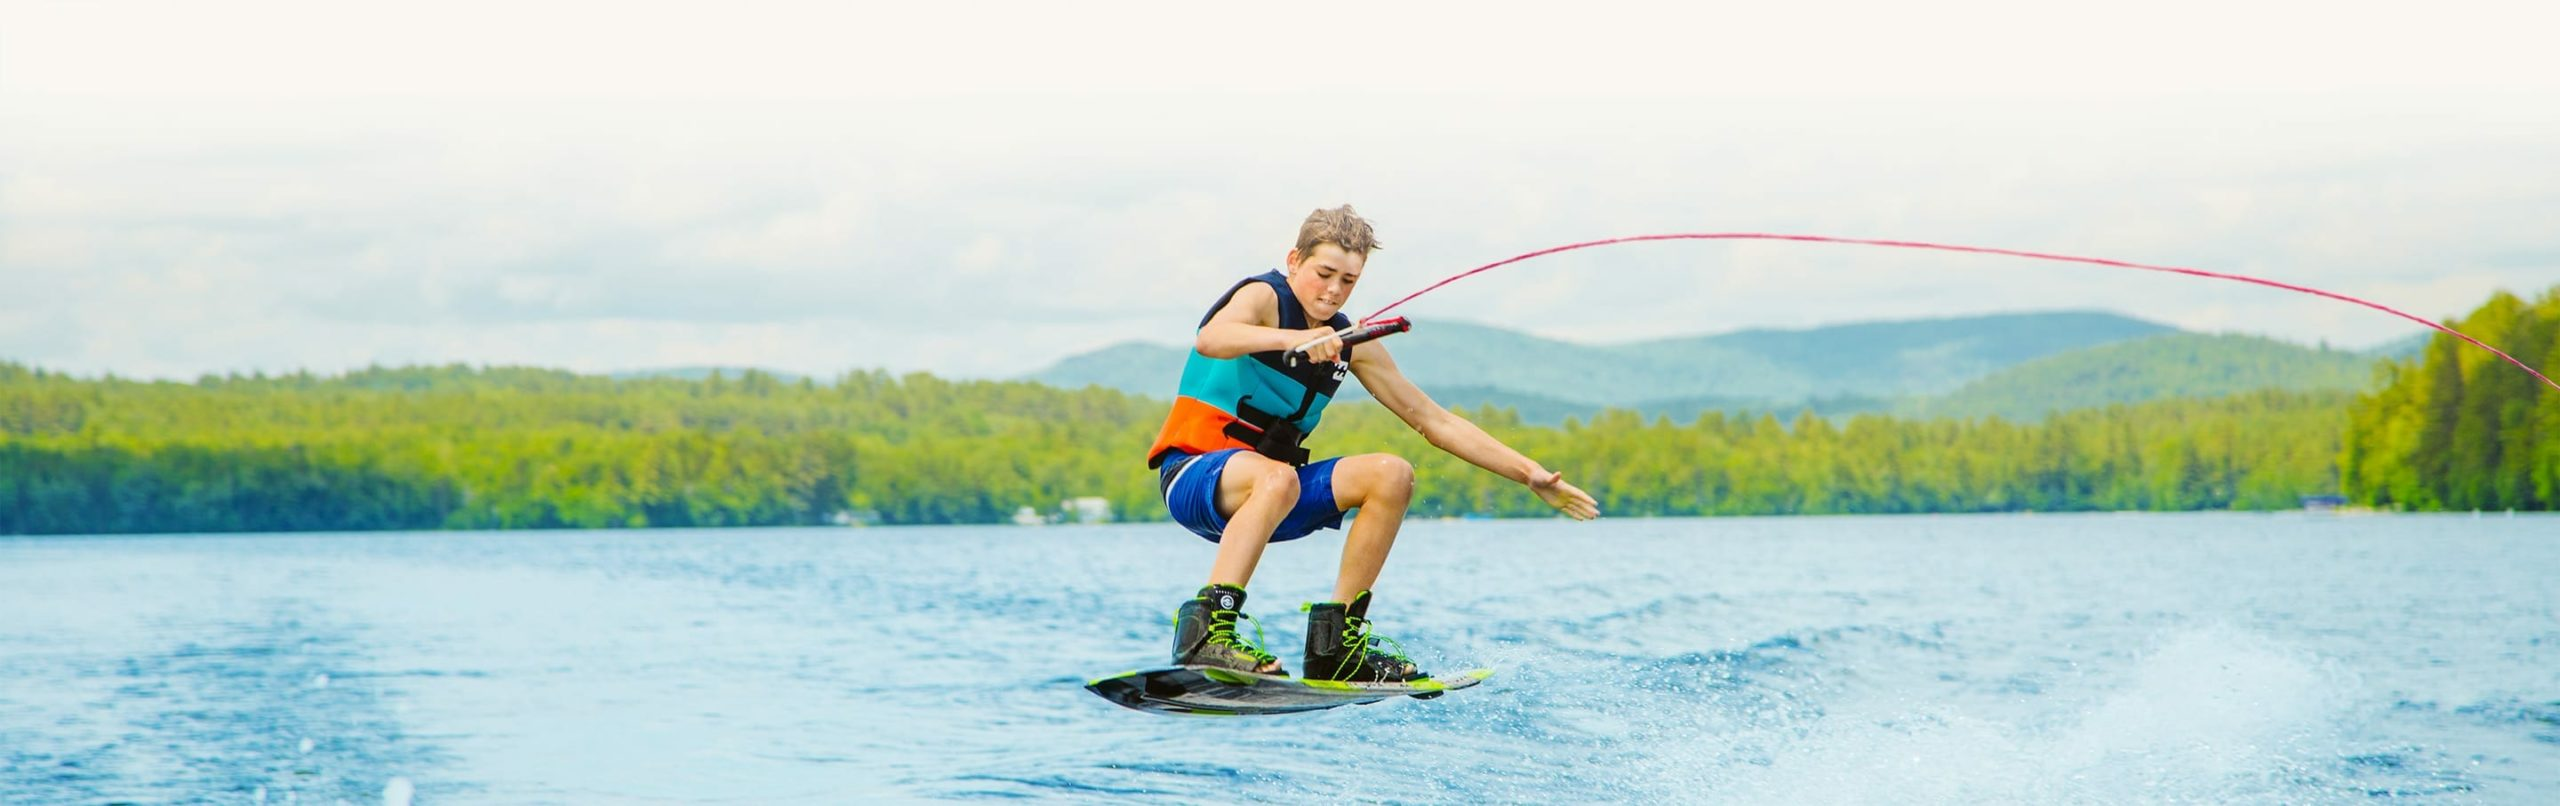 Camper doing a wakeboarding trick